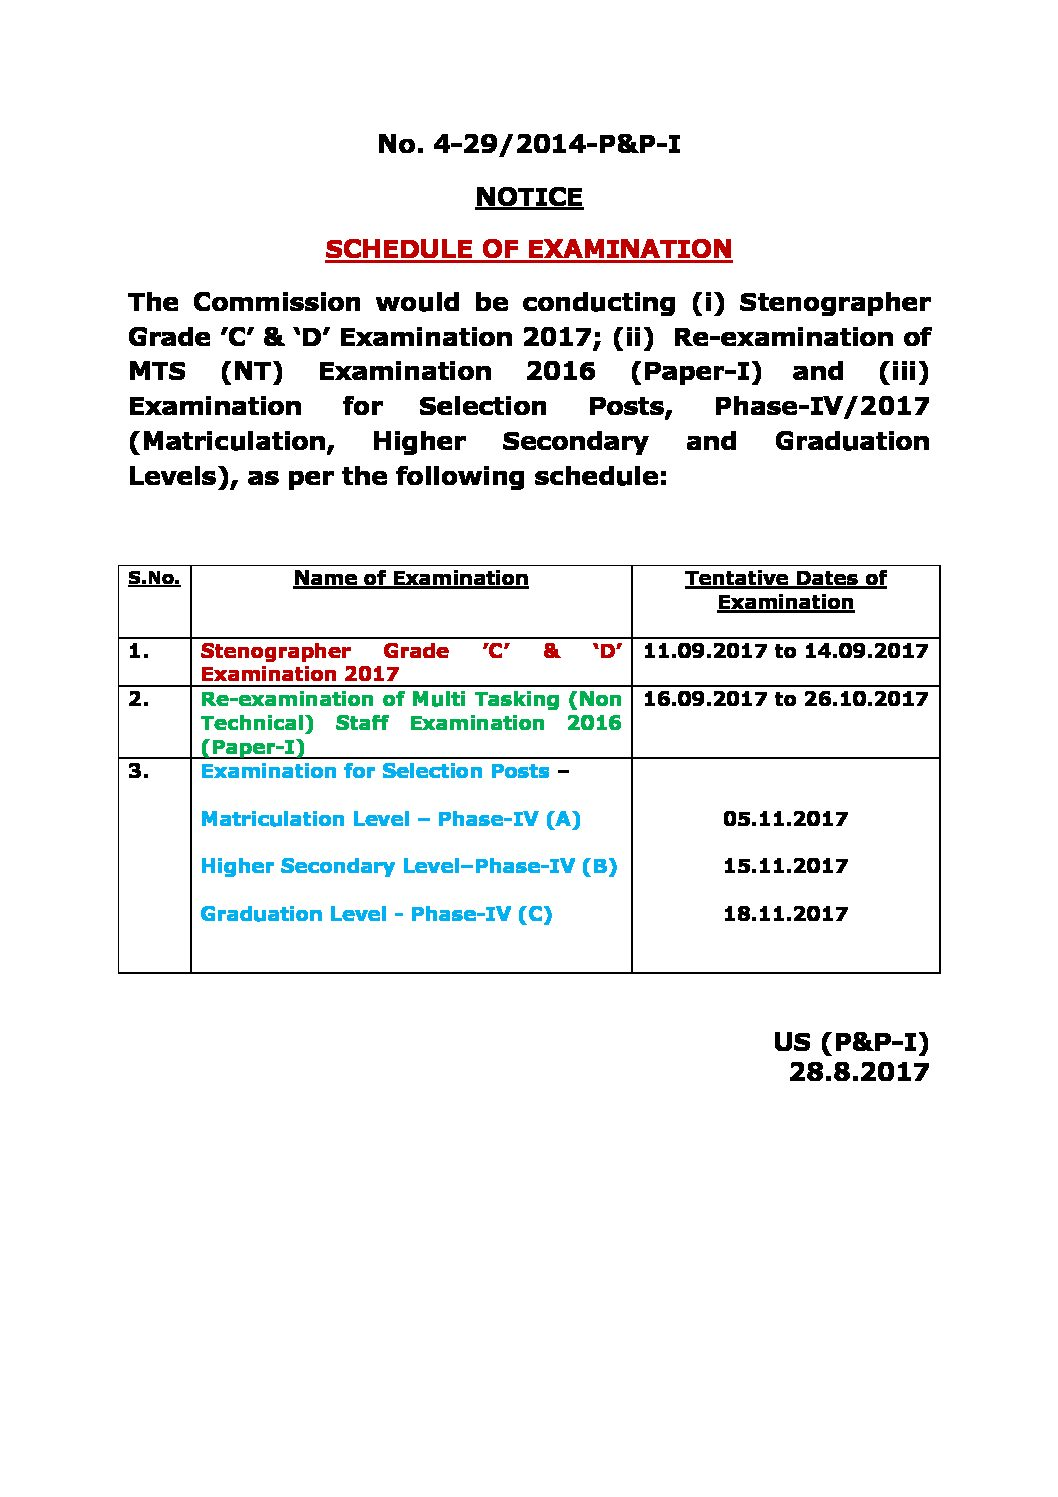 SSC New Exam Schedule for stenographer 2017 & MTS 2016